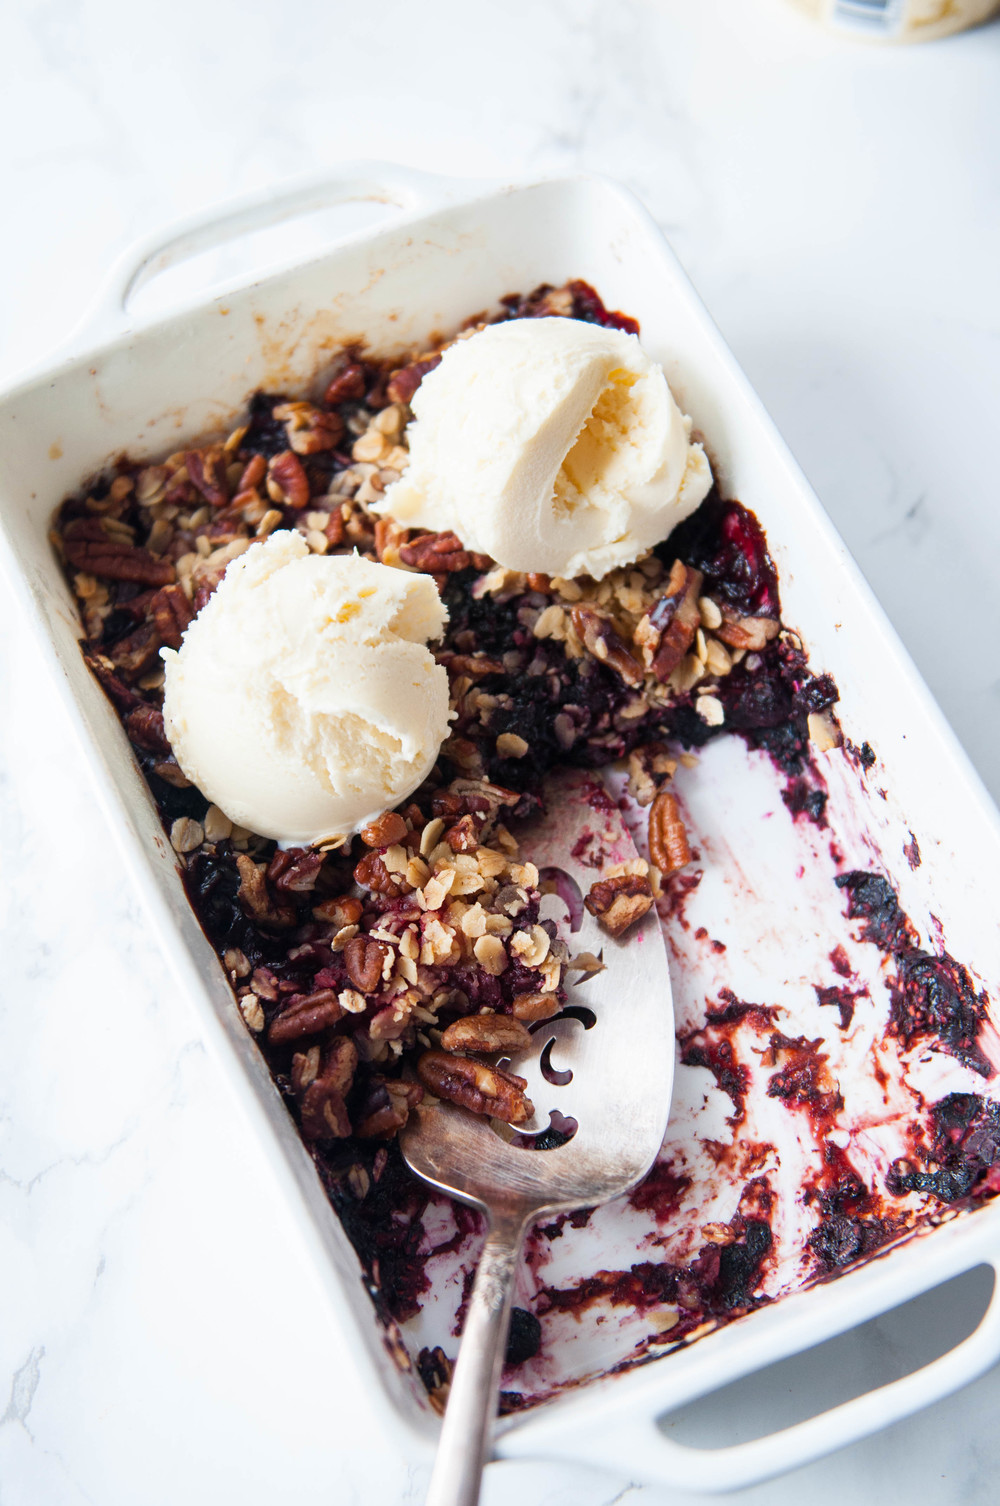 BERRY CRUMBLE WITH OAT PECAN TOPPING